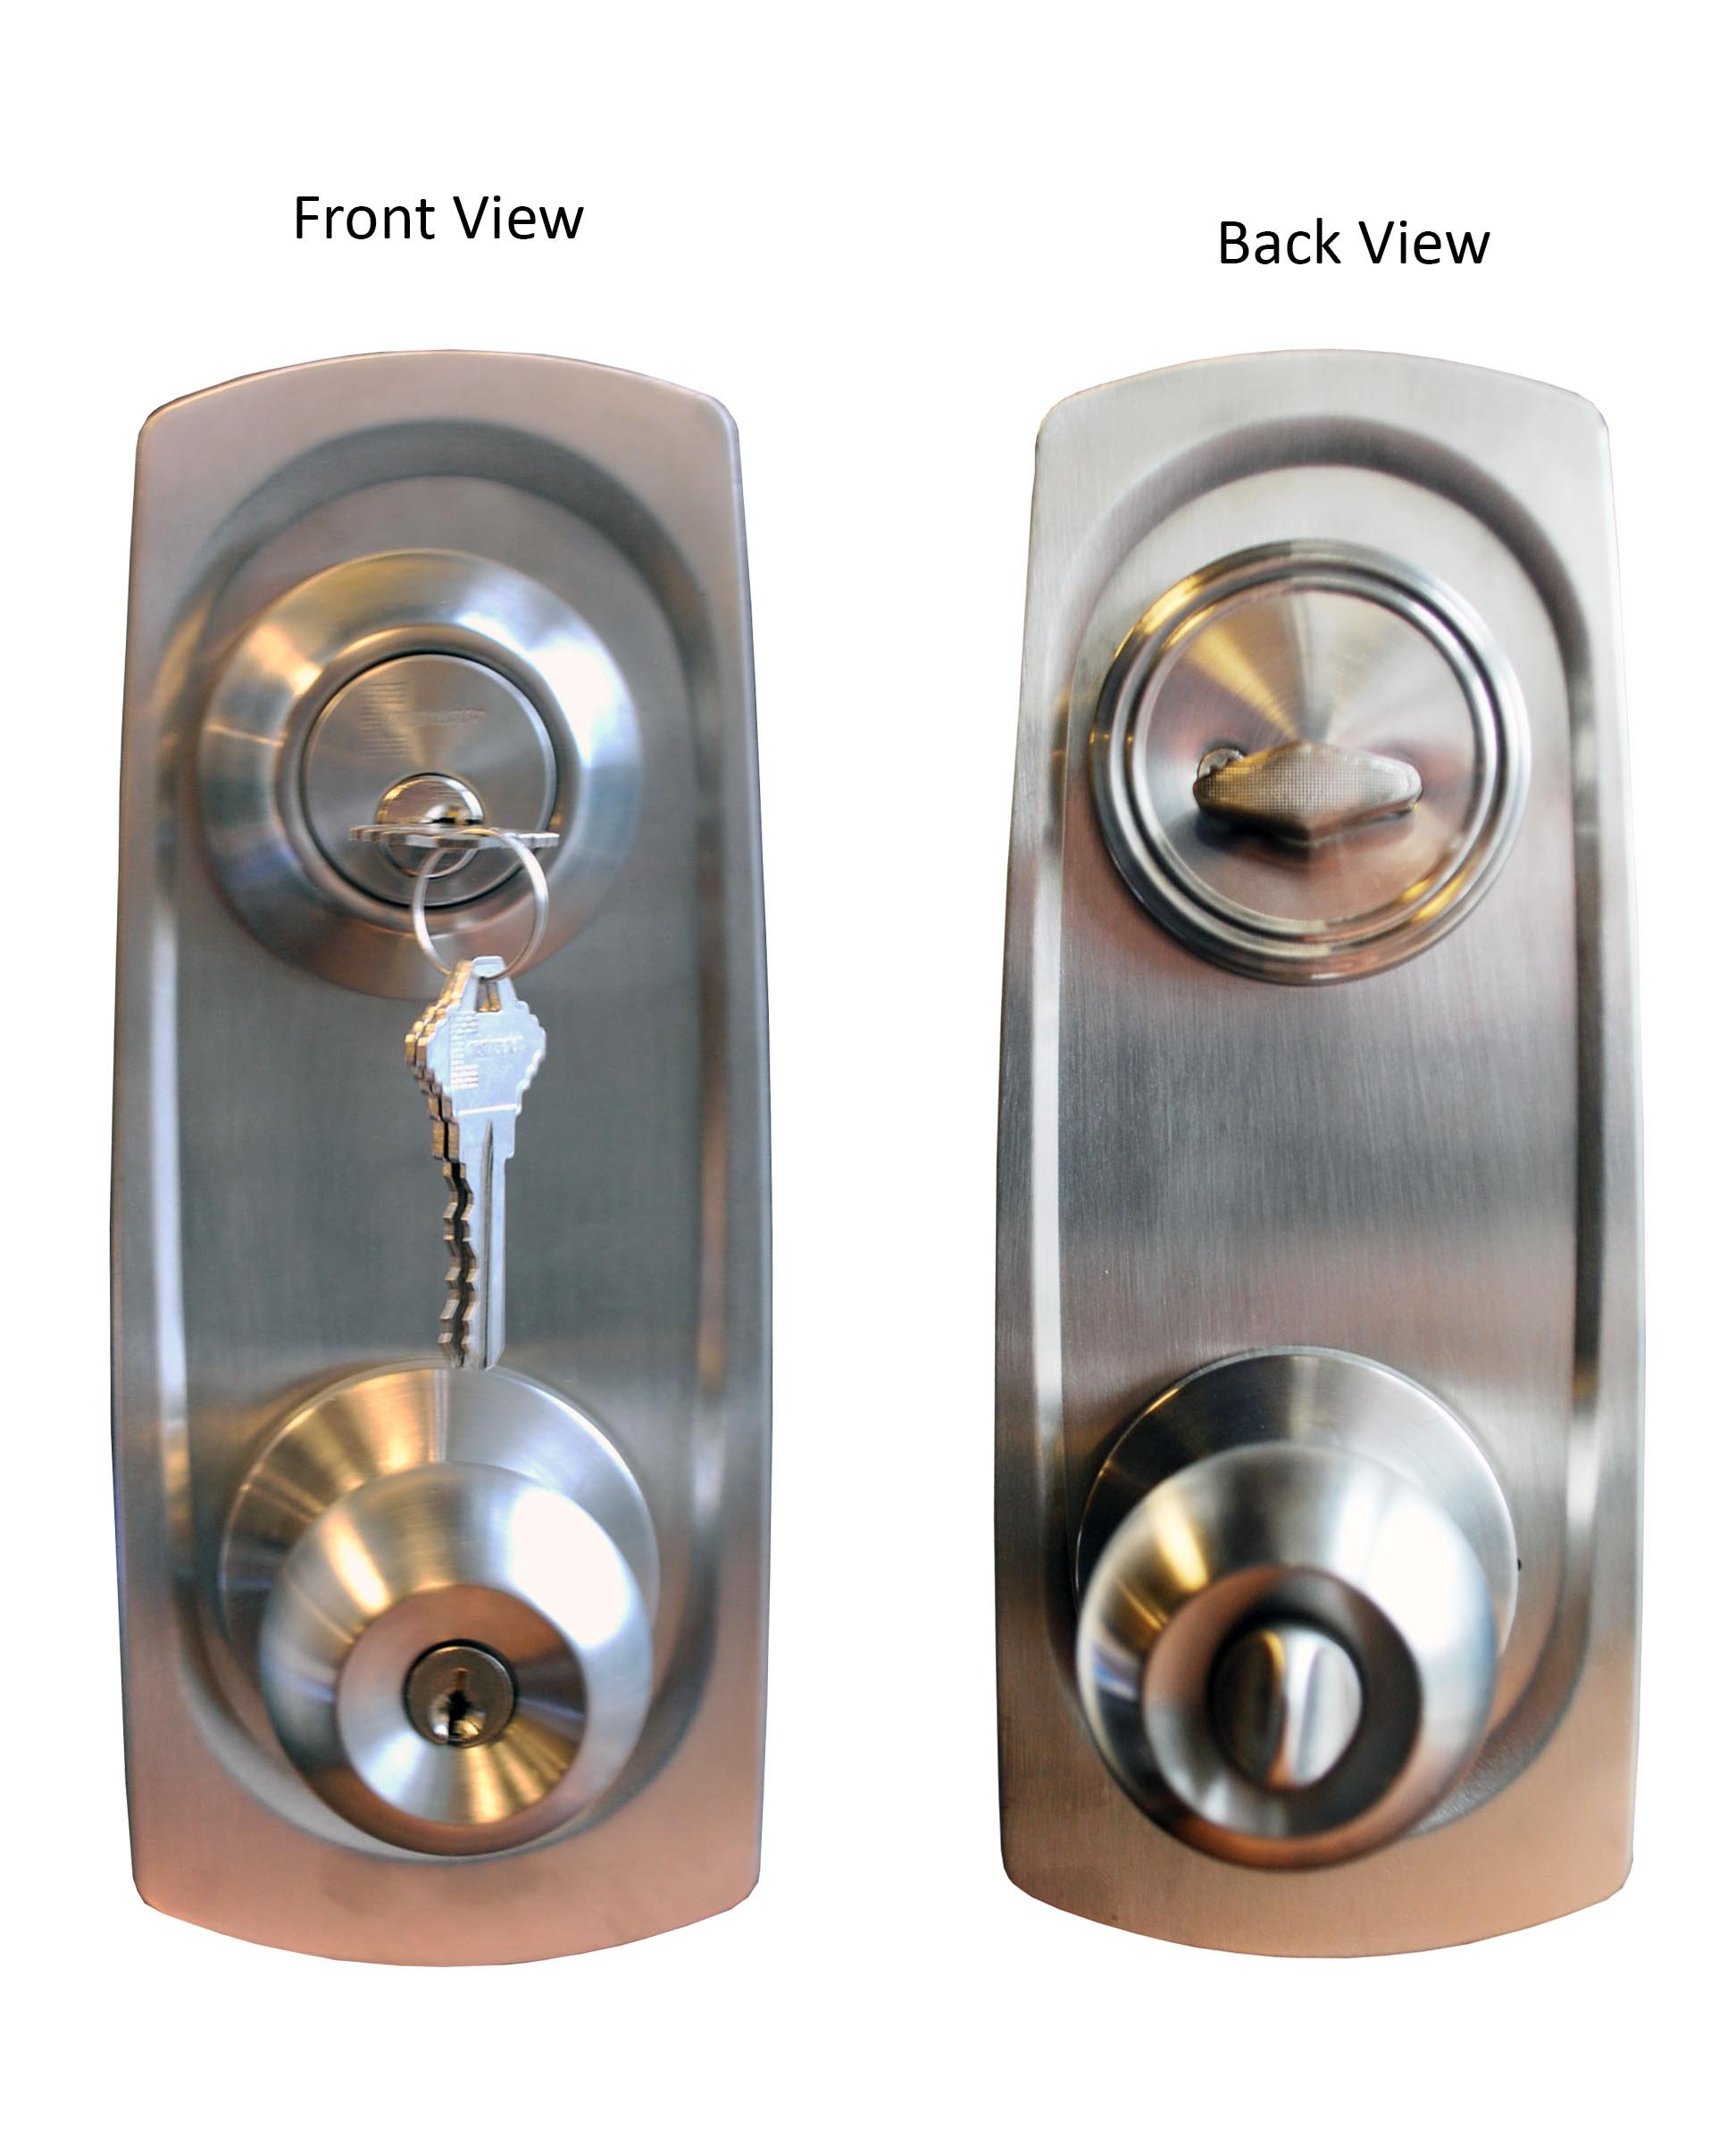 Constructor Chronos Combo Entry and Deadbolt Single Cylinder Keyed-Alike Stainless Steel Finish Door Lever Lock Set Knob Handle Set With Plates